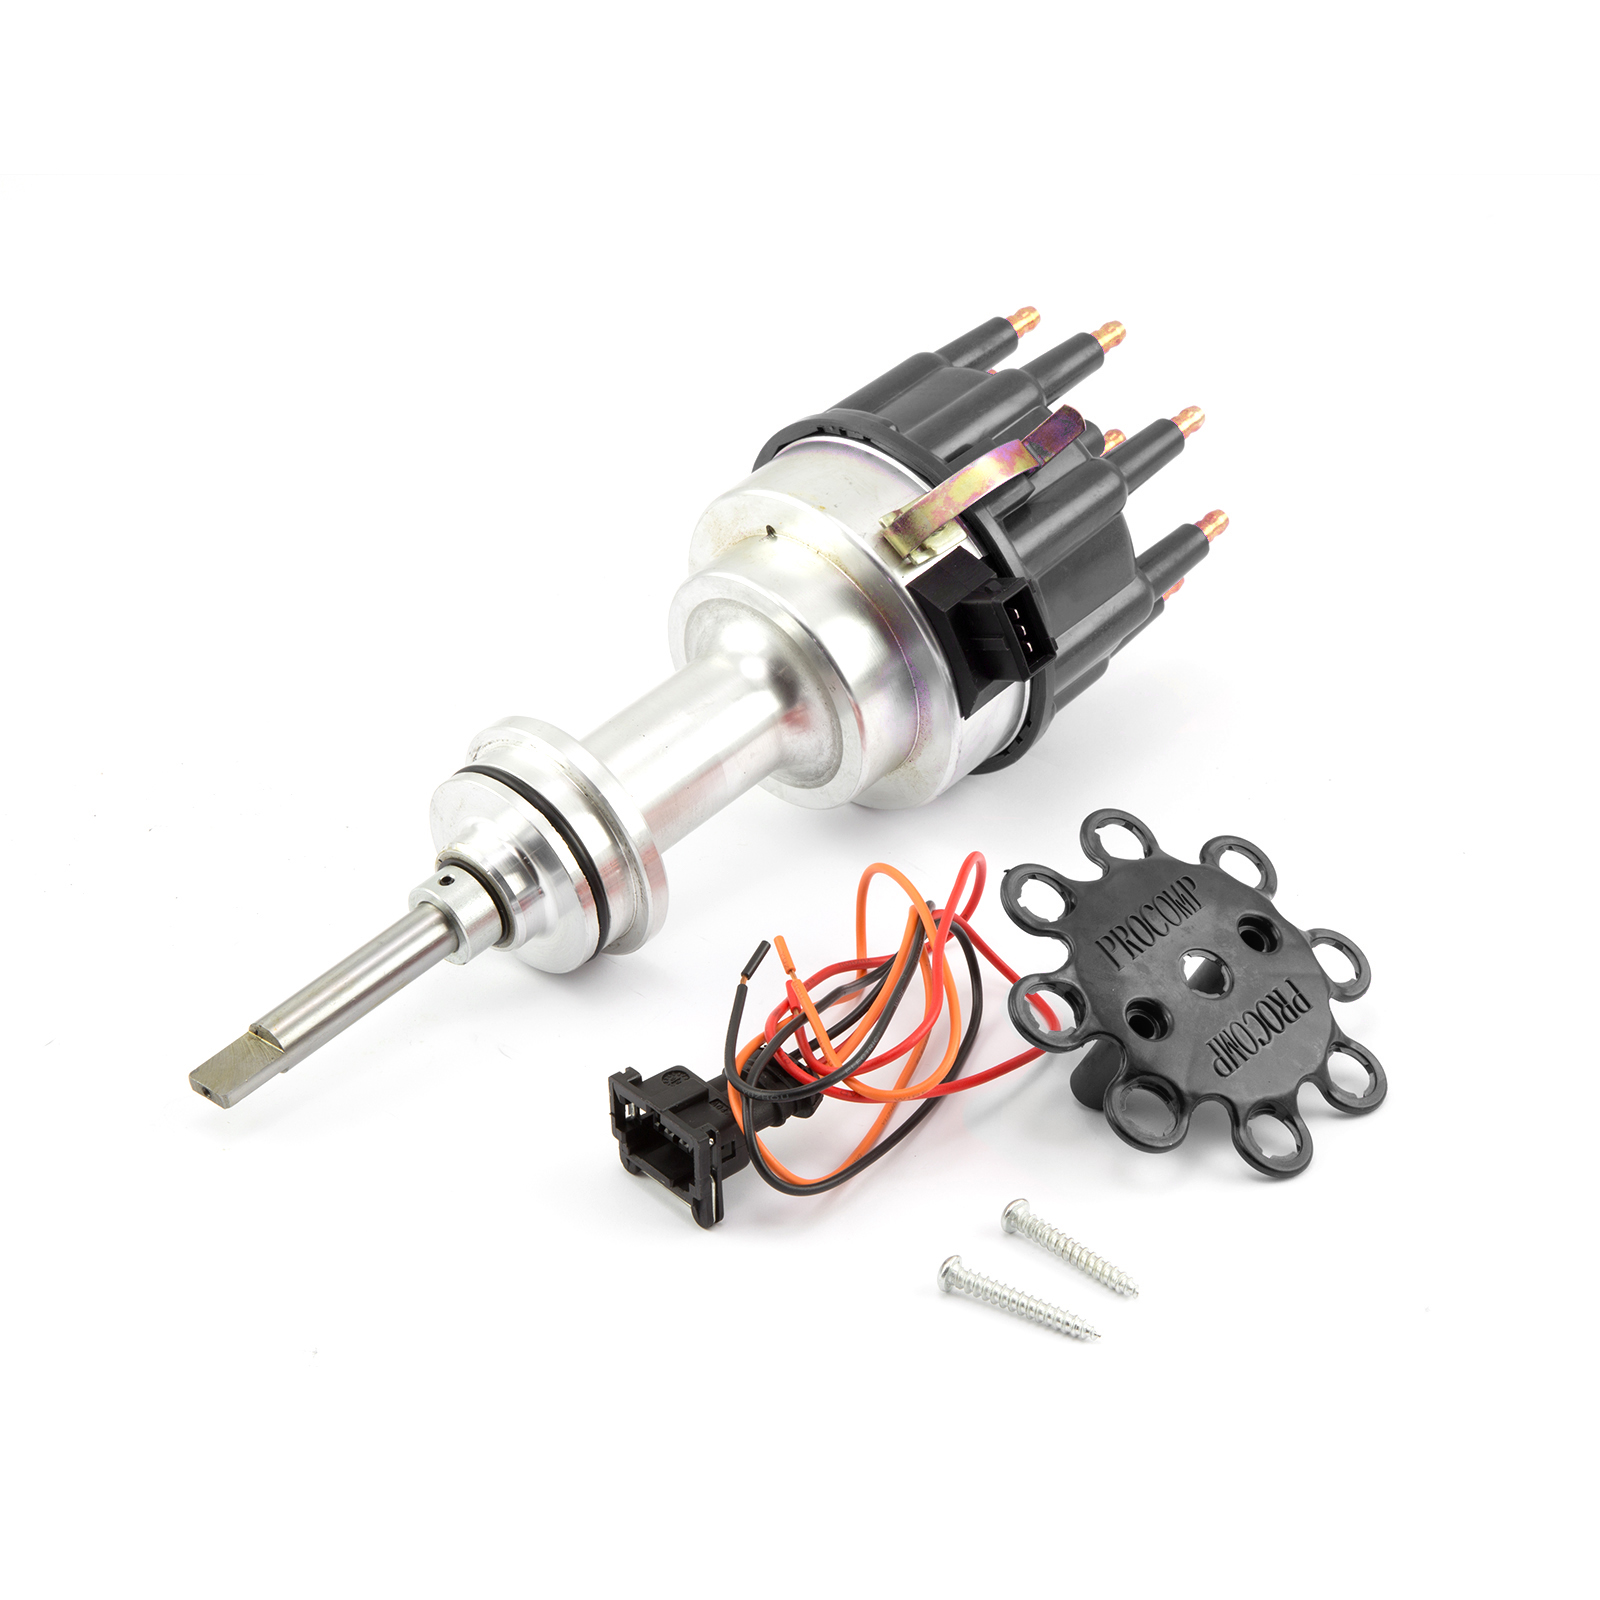 Mopar Chrysler SB 318 340 360 8020 Series Pro Billet Ready to Run Distributor [Black]